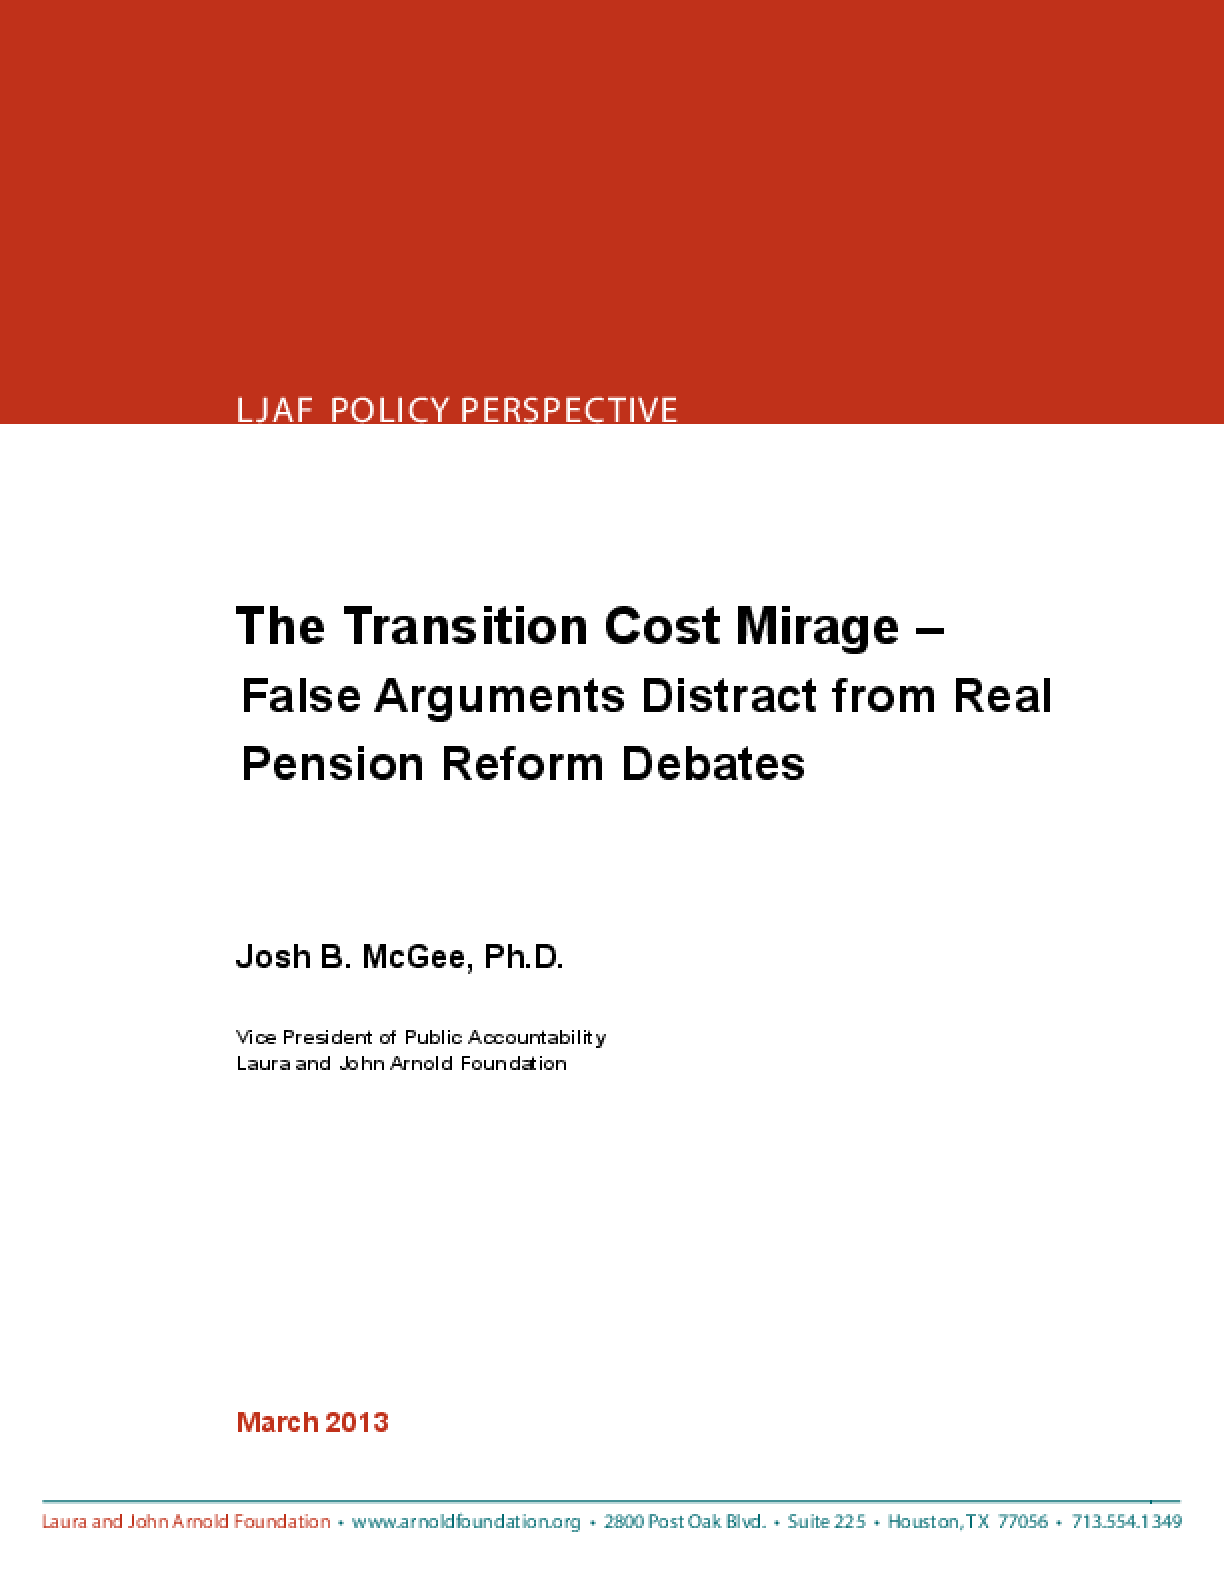 The Transition Cost Mirage: False Arguments Distract from Real Pension Reform Debates